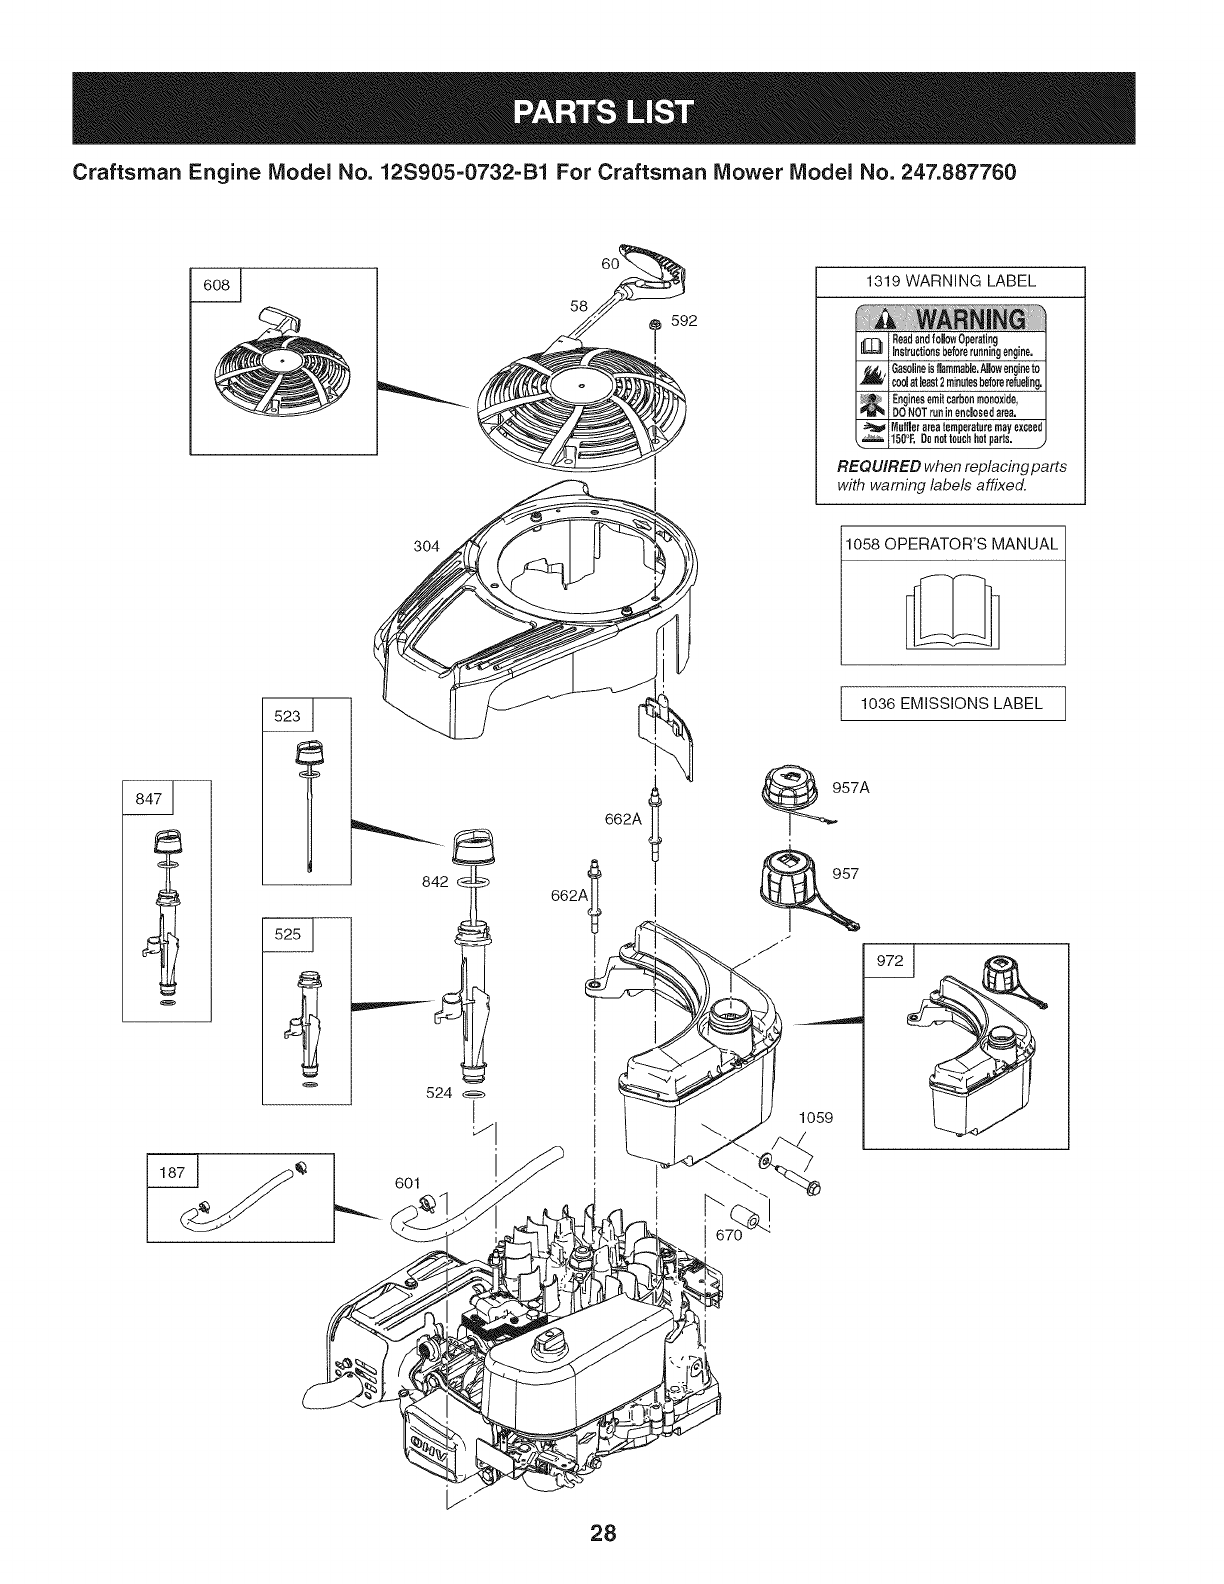 Page 28 of Craftsman Lawn Mower 247.887760 User Guide